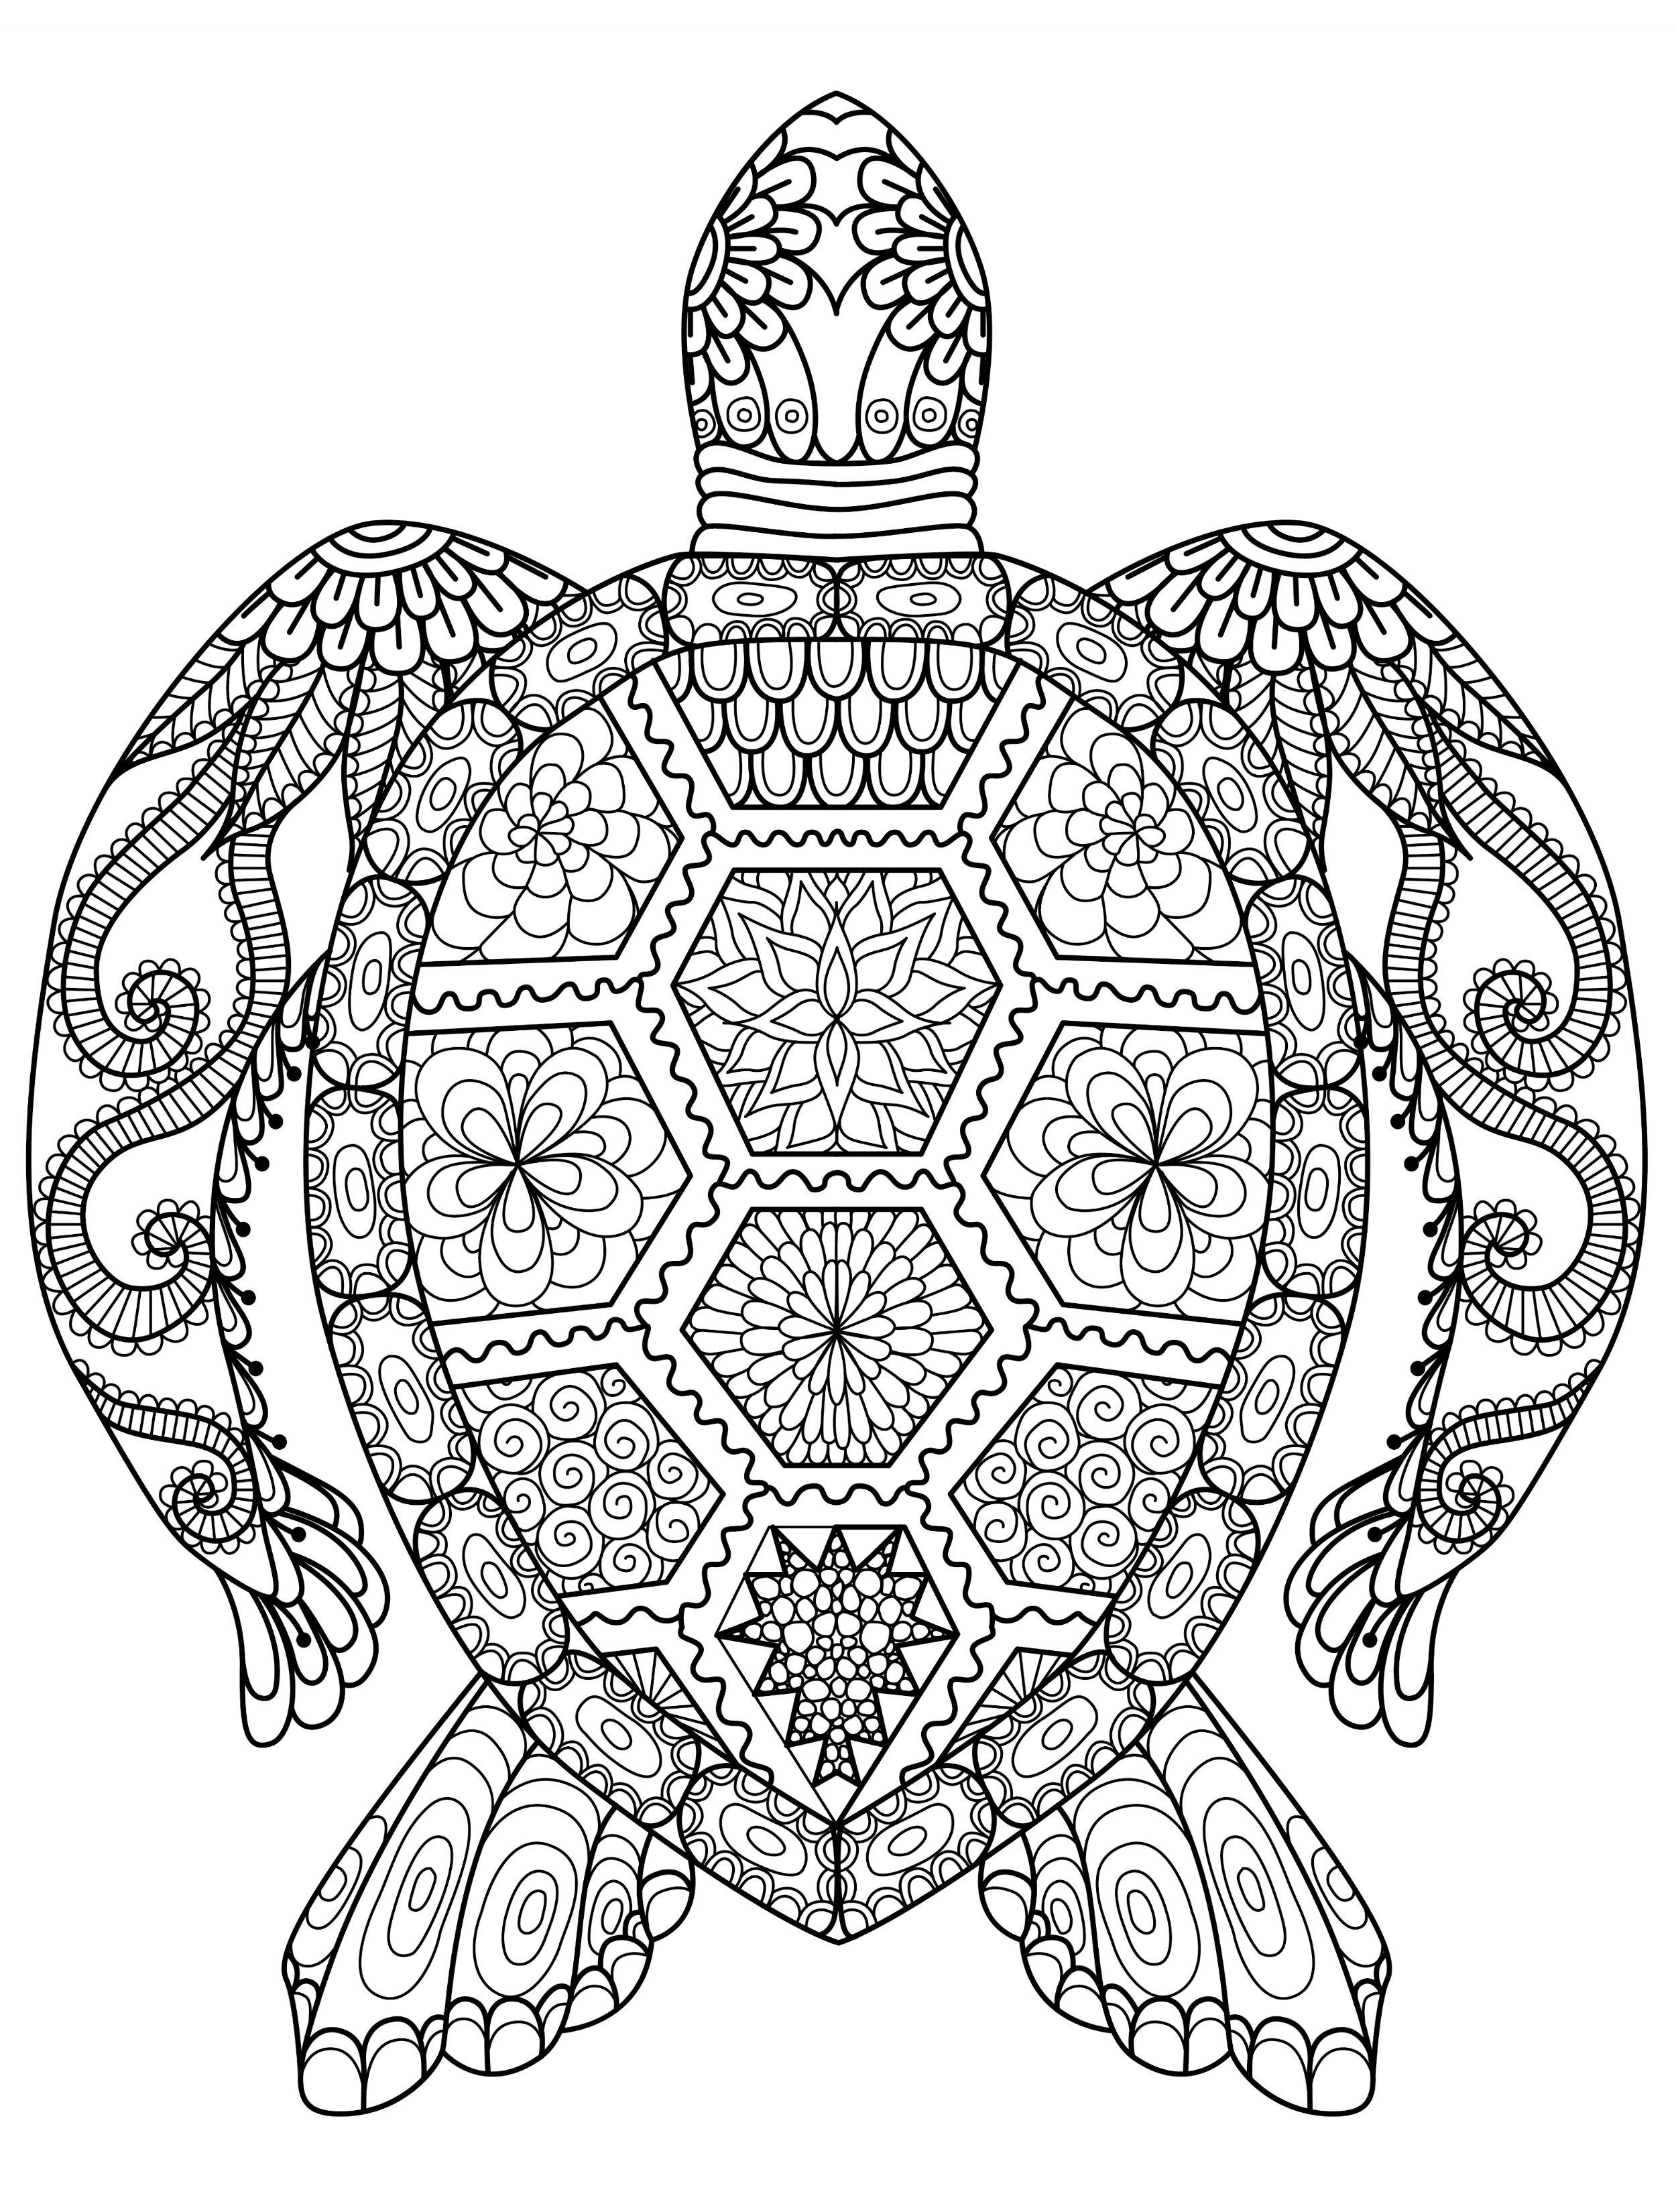 20 gorgeous free printable adult coloring pages … | adult